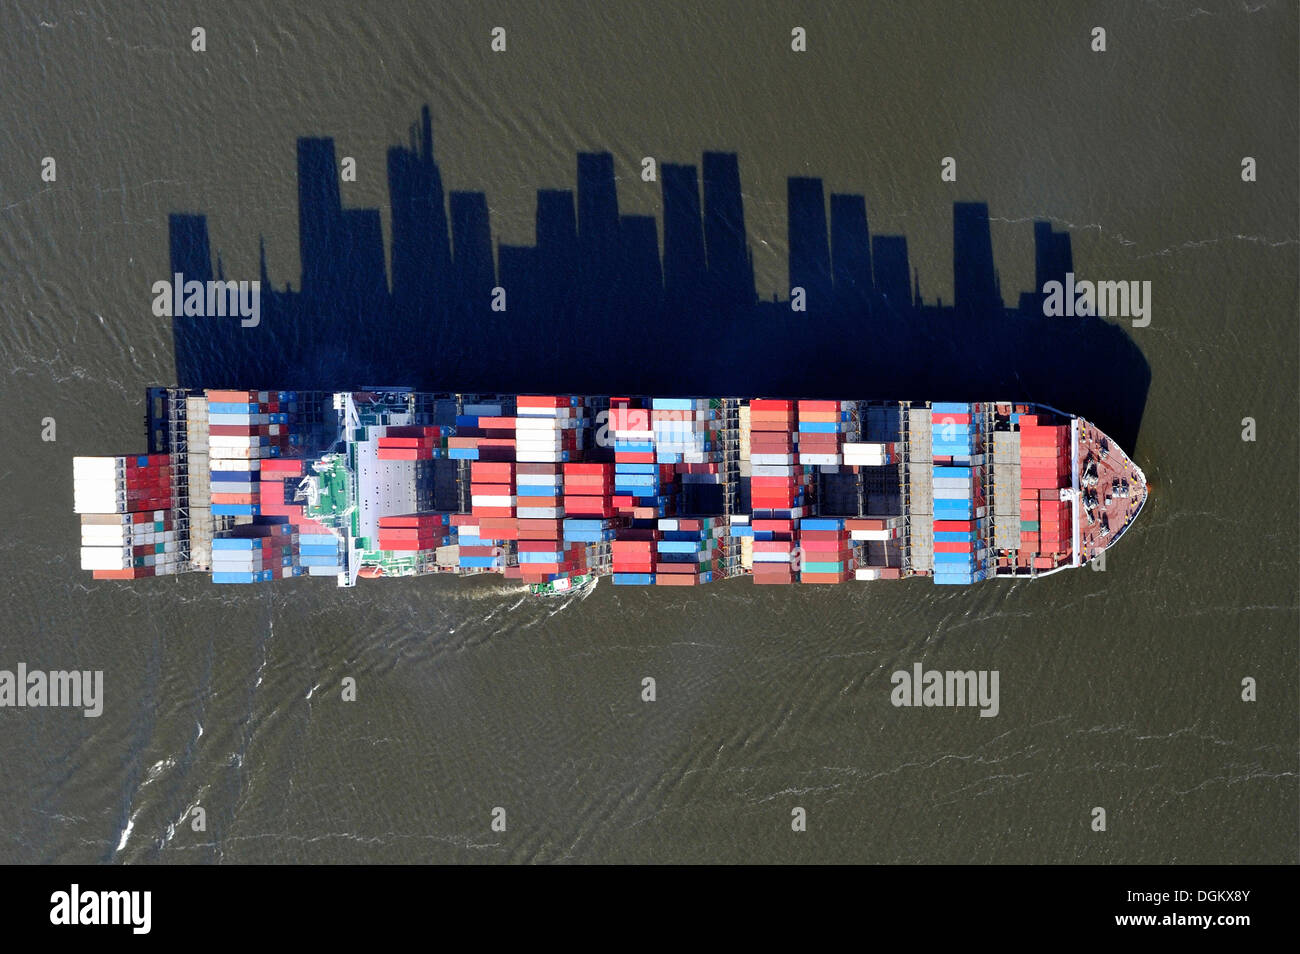 Aerial view, container ship on the Elbe River, with long shadows of the stacked containers, Hamburg, Hamburg, Germany Stock Photo